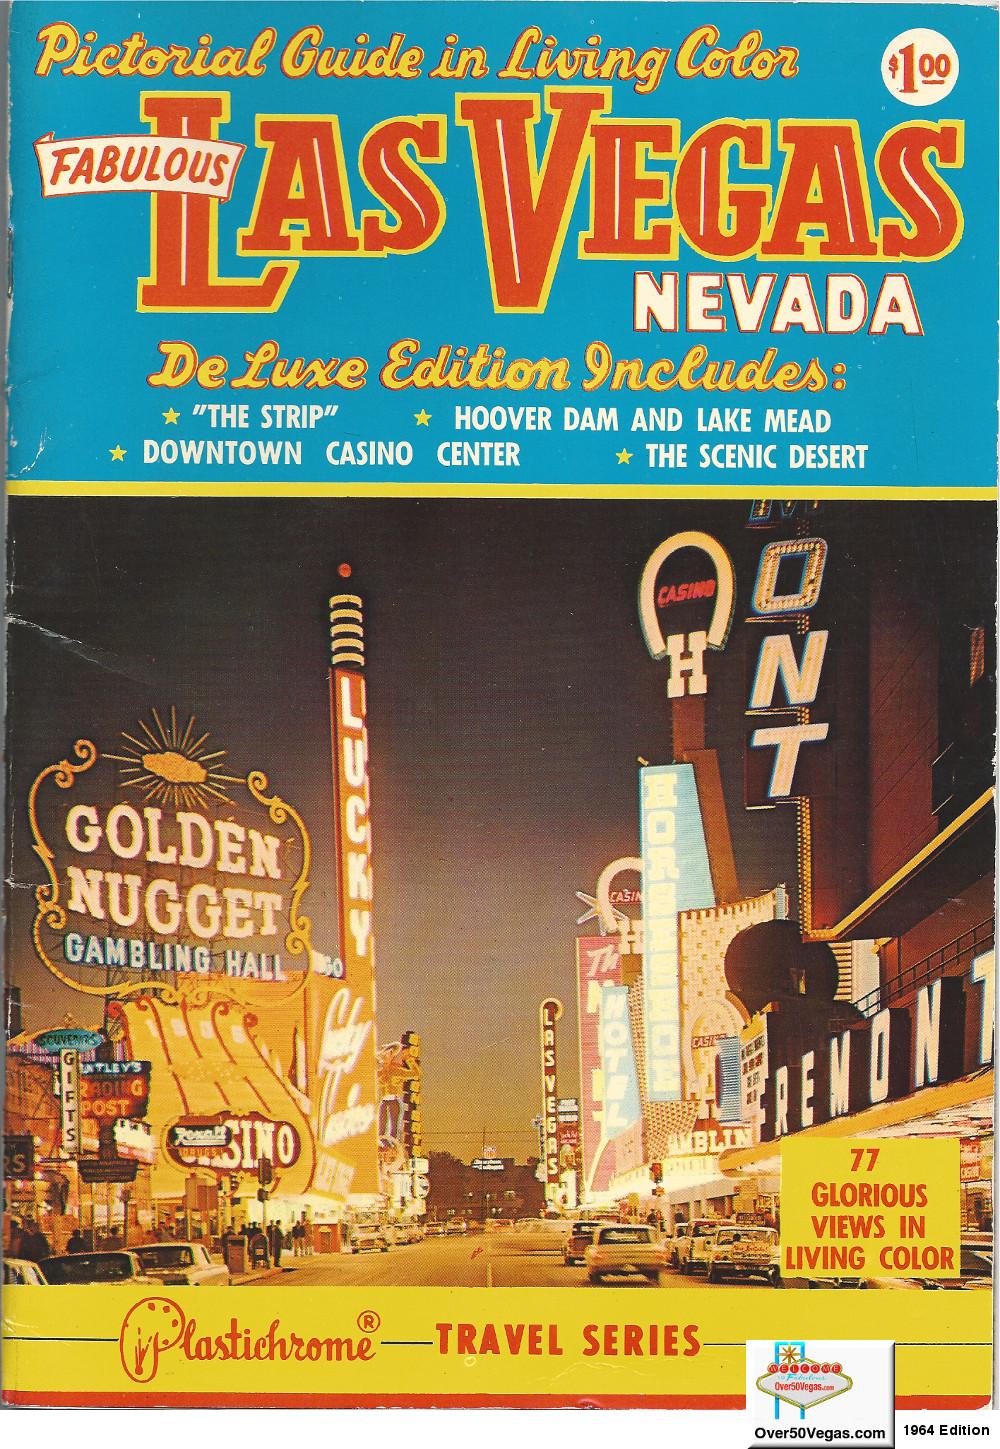 This beautiful full color pictorial guide to Las Vegas from 1964 features the bright lights of downtown Las Vegas including the Lucky Casino, Horseshoe, Golden Nugget, Las Vegas Club, Fremont, Golden Gate, and Pioneer.  On the left side of the cover you can see Bentley's Trading Post and White Cross Drugs which would be torn down in 1965 for the construction of the Four Queens.